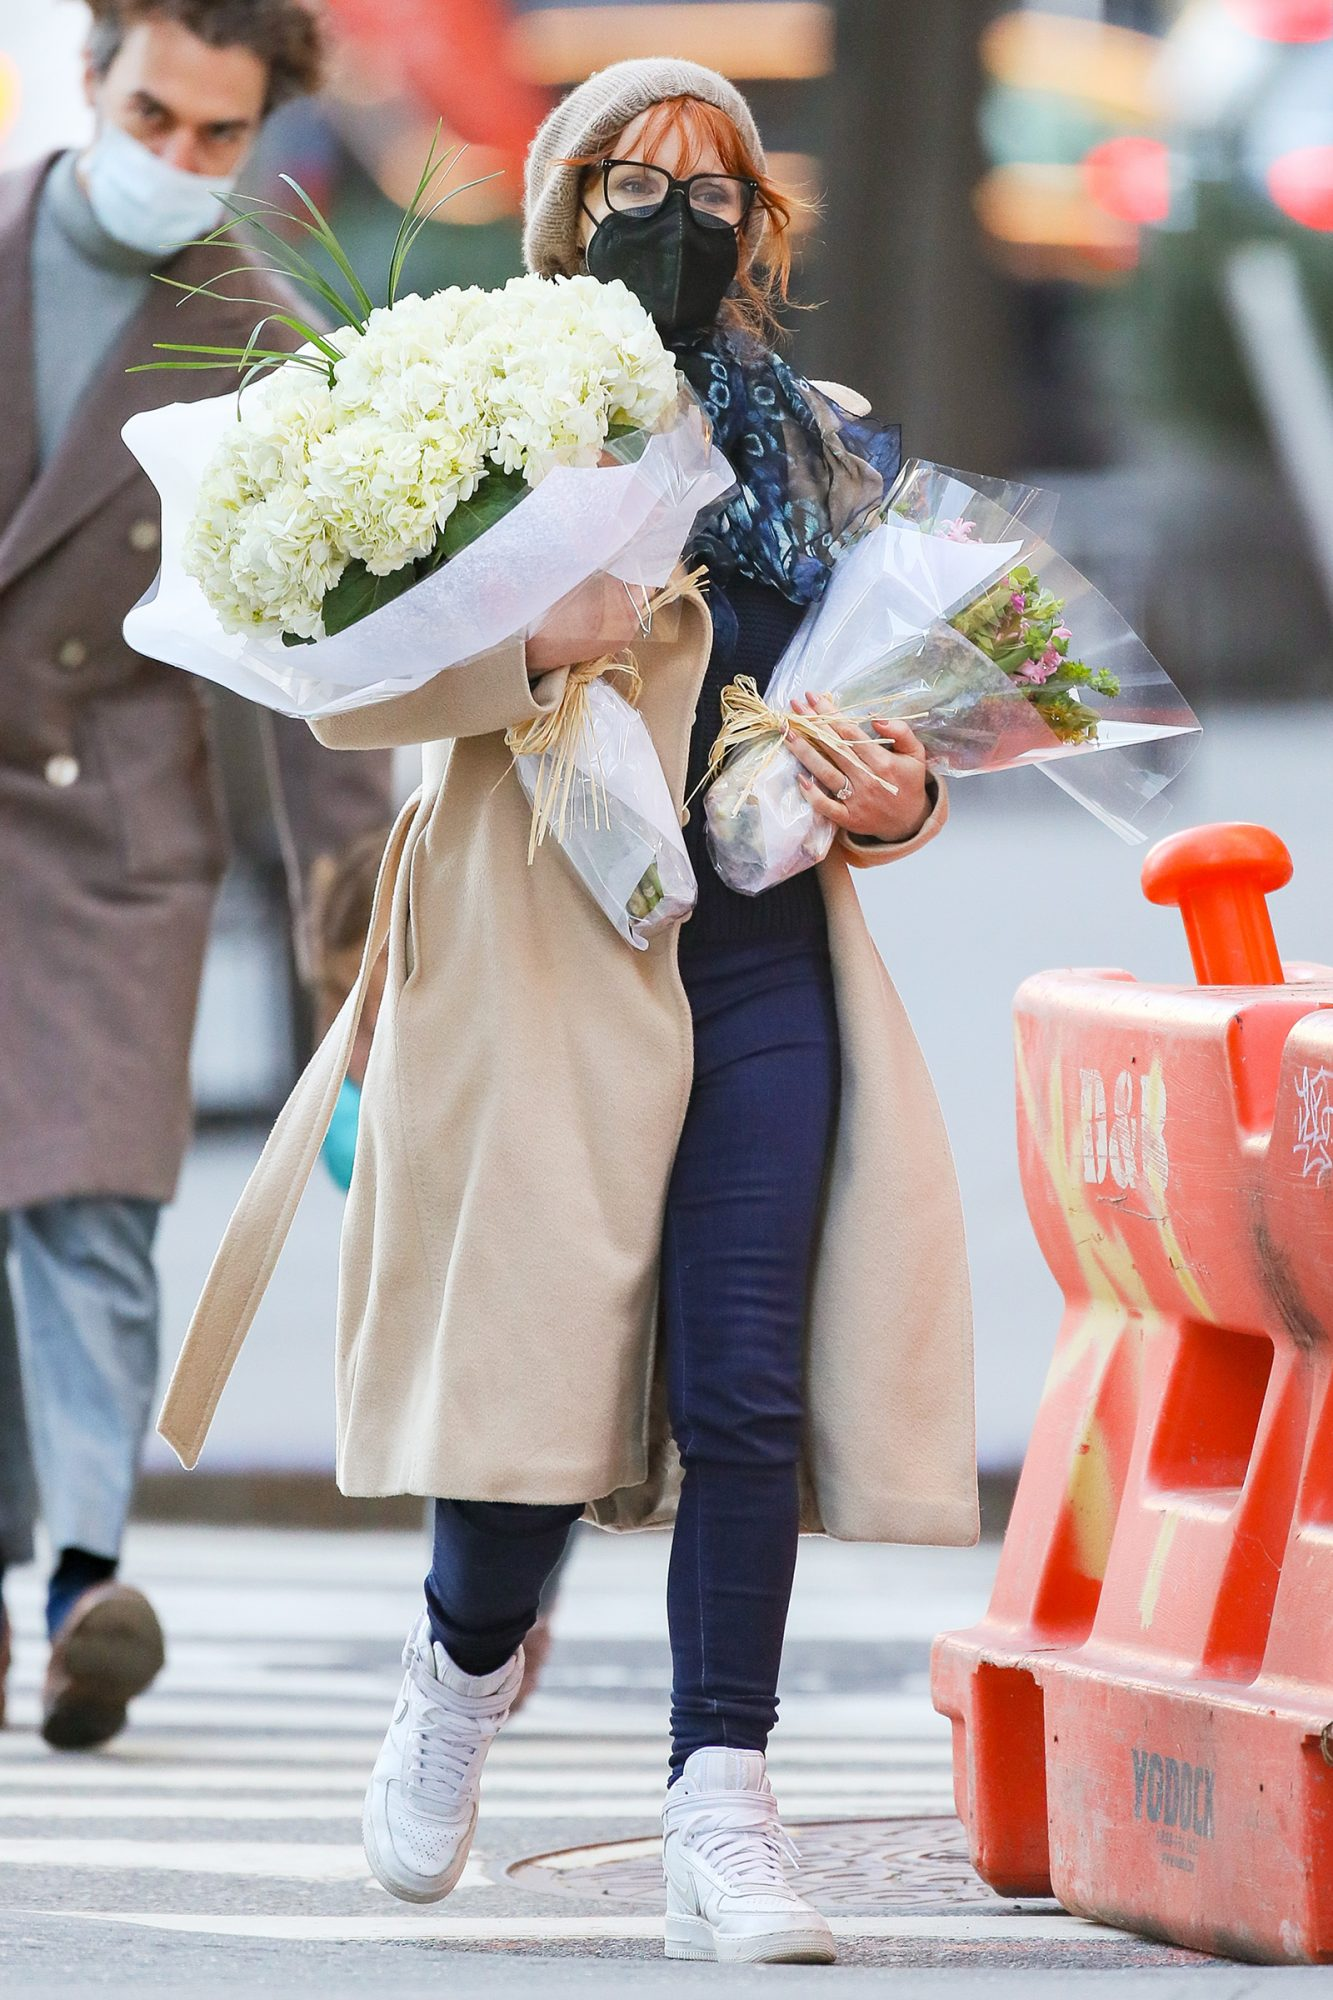 Jessica Chastain Has Her Hands Full Of Flowers In New York City